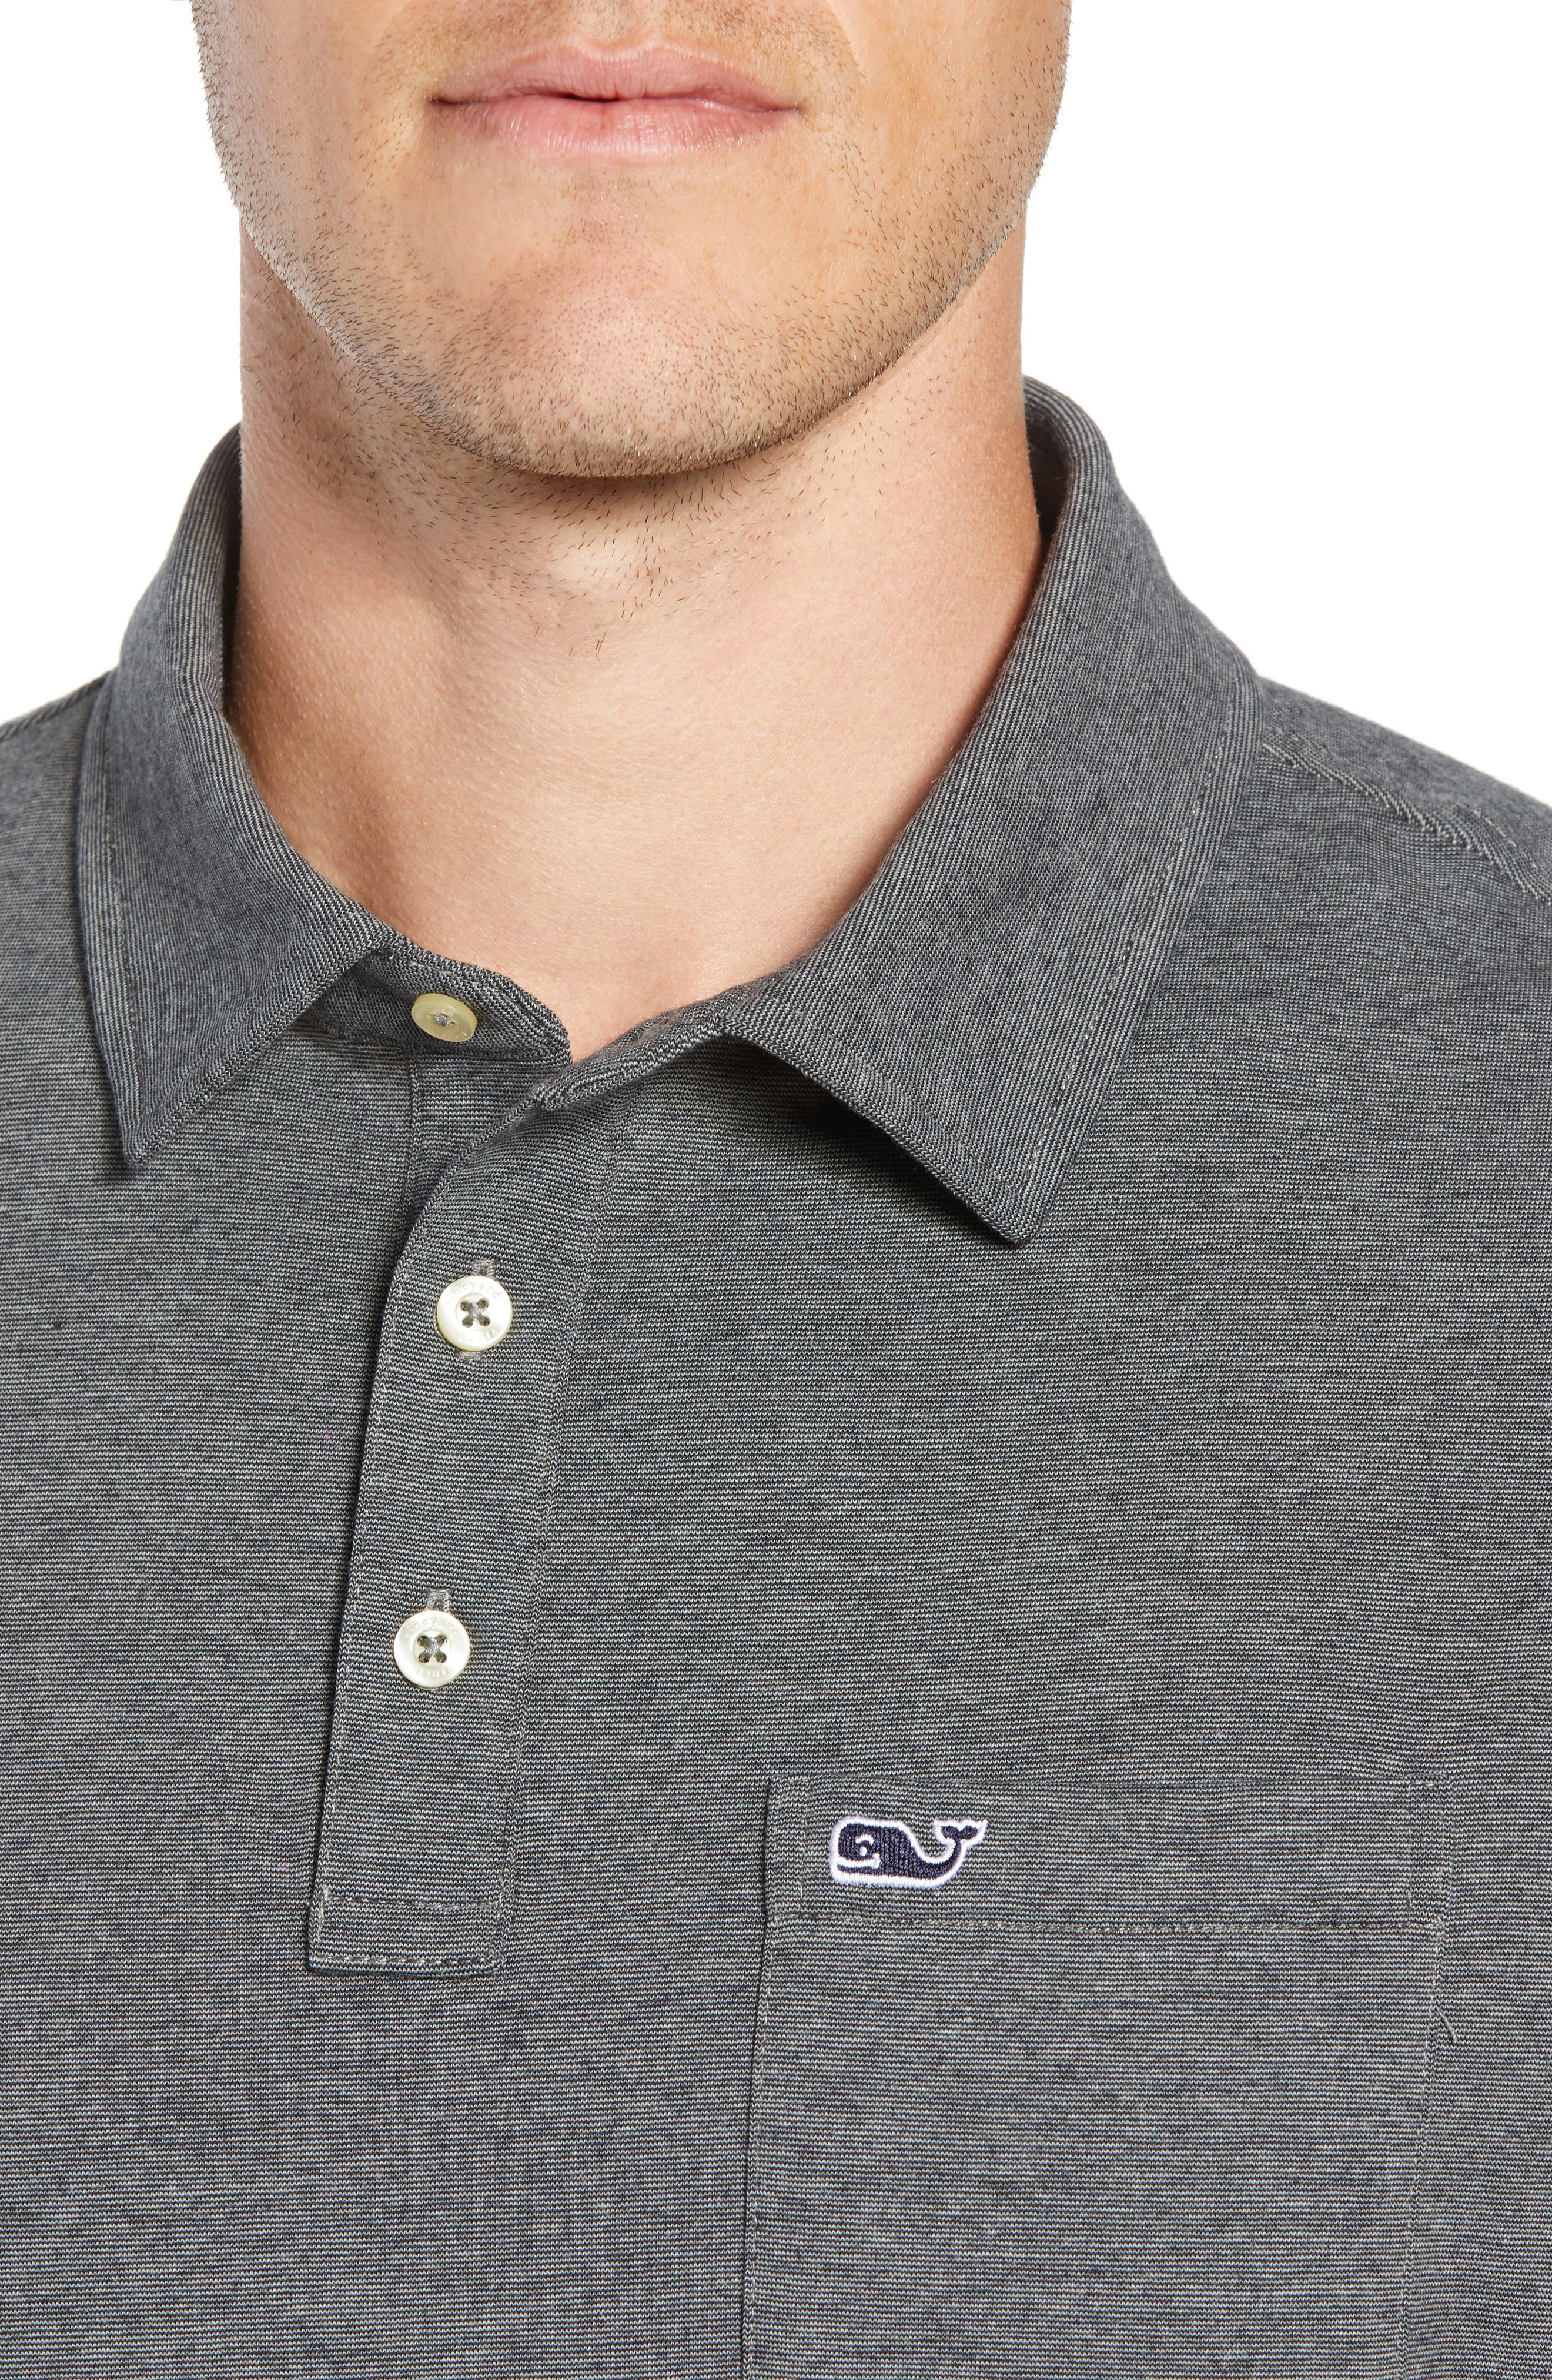 Edgartown Polo Shirt,                             Alternate thumbnail 4, color,                             CHARCOAL